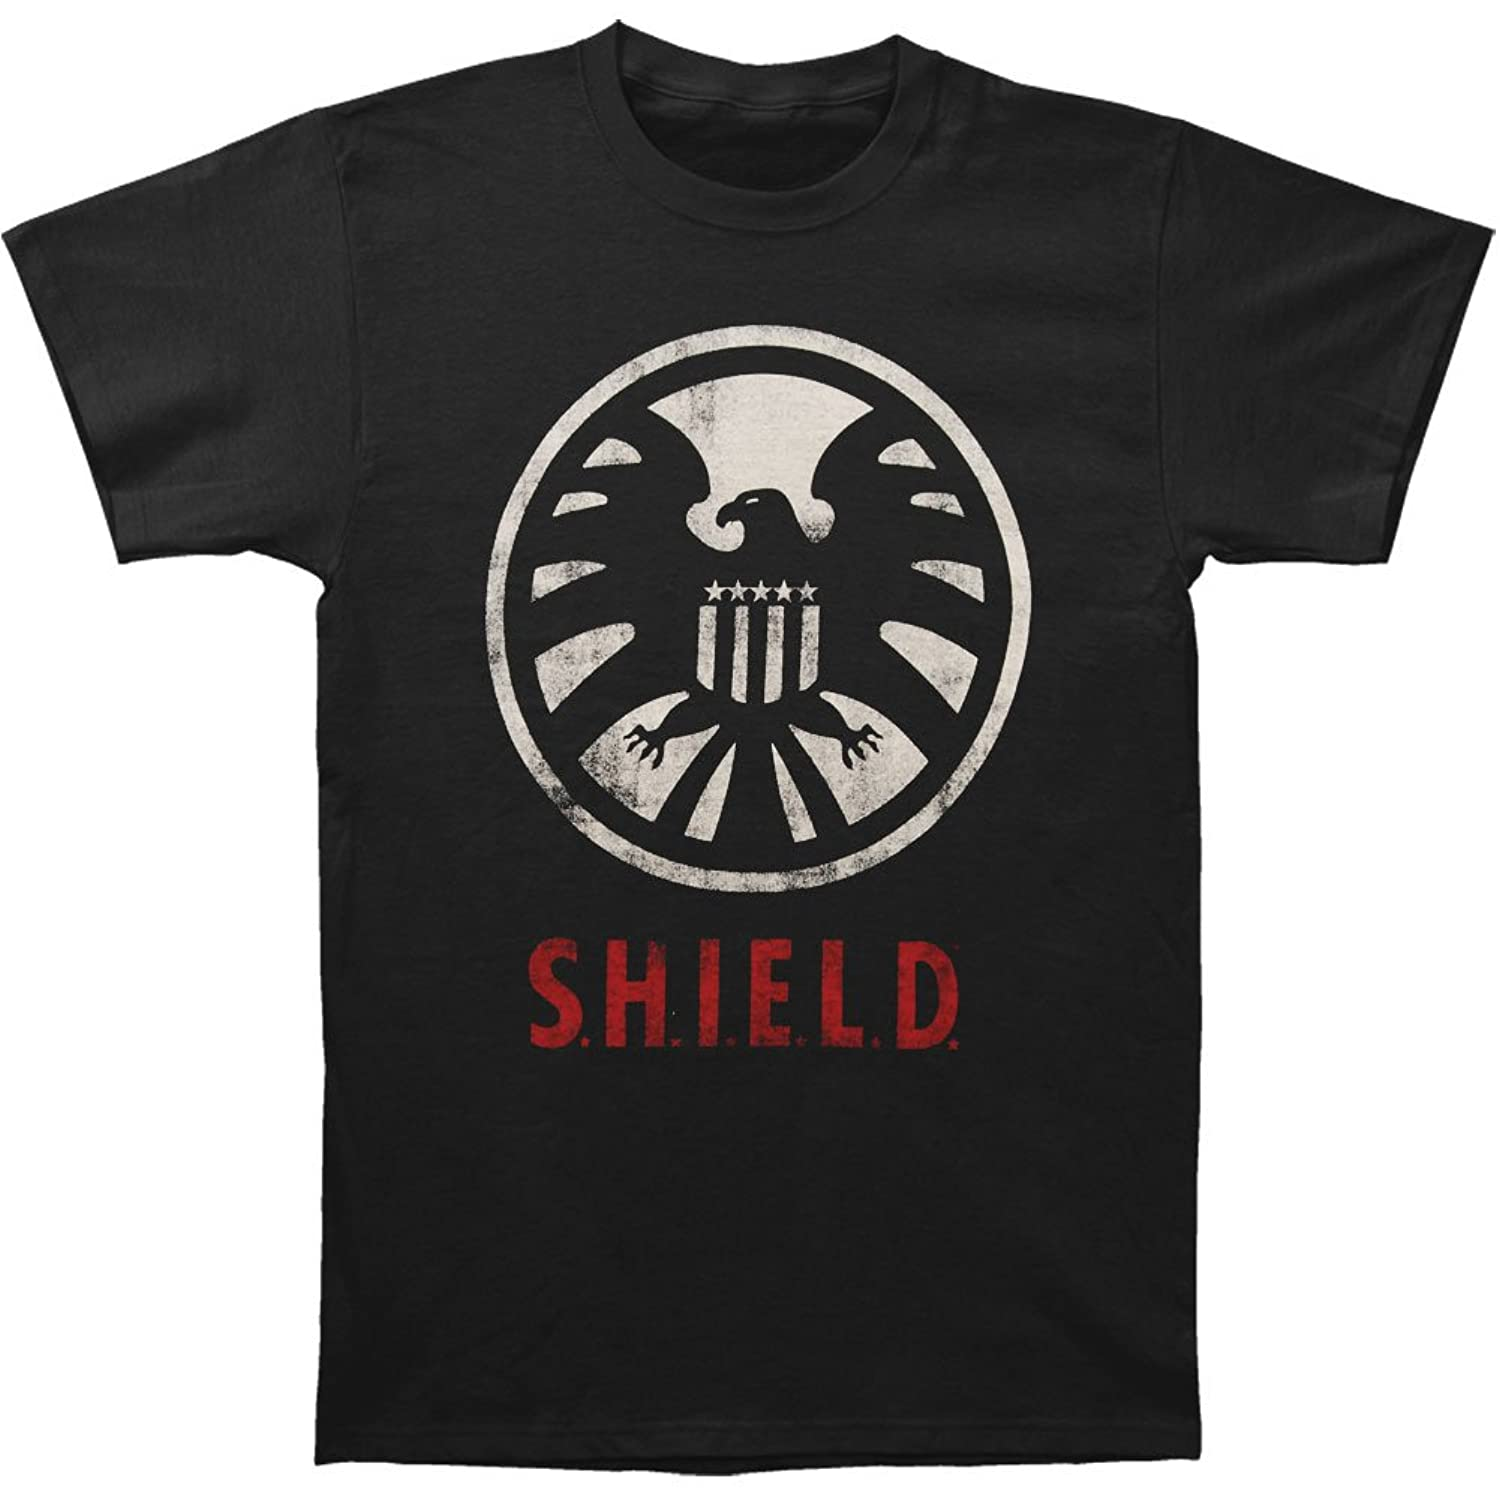 S.H.I.E.L.D. - Distressed Shield Soft T-Shirt Black